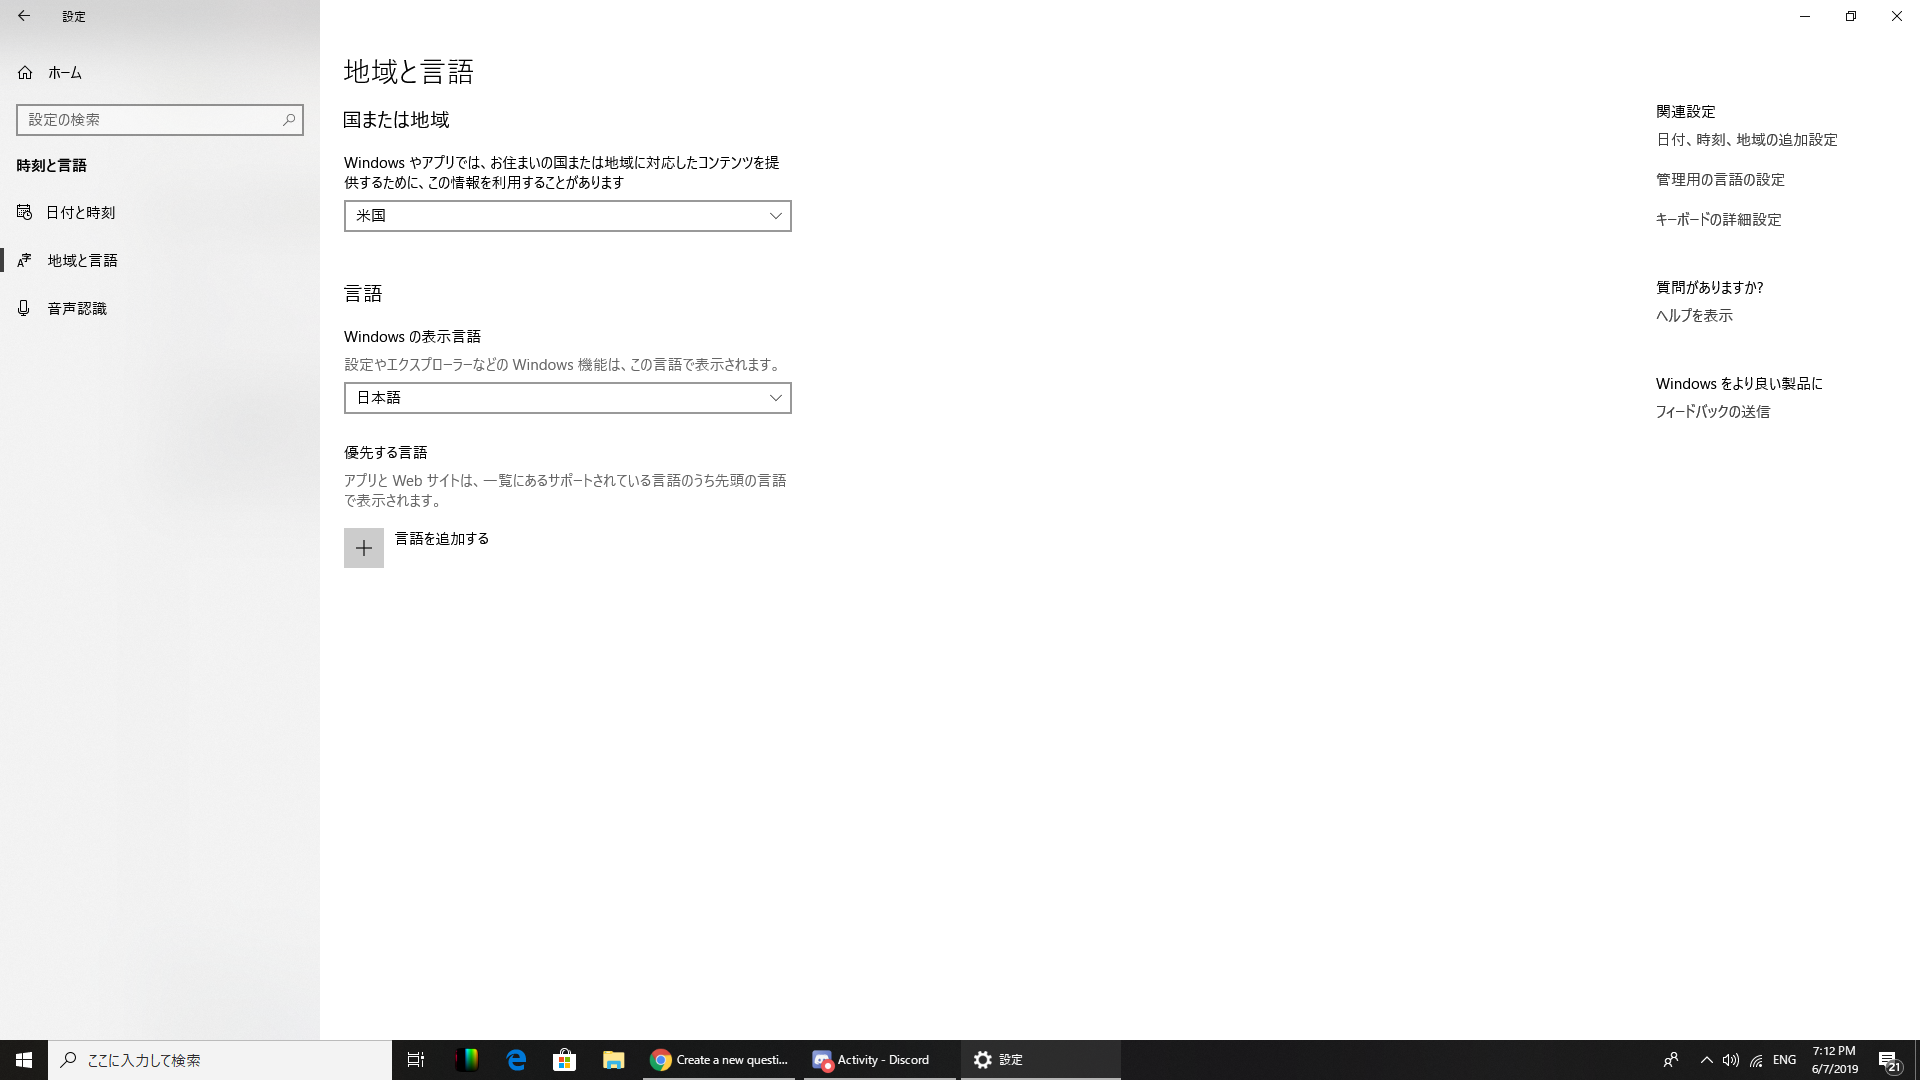 Can't change my Windows 10 display language from Japanese back to